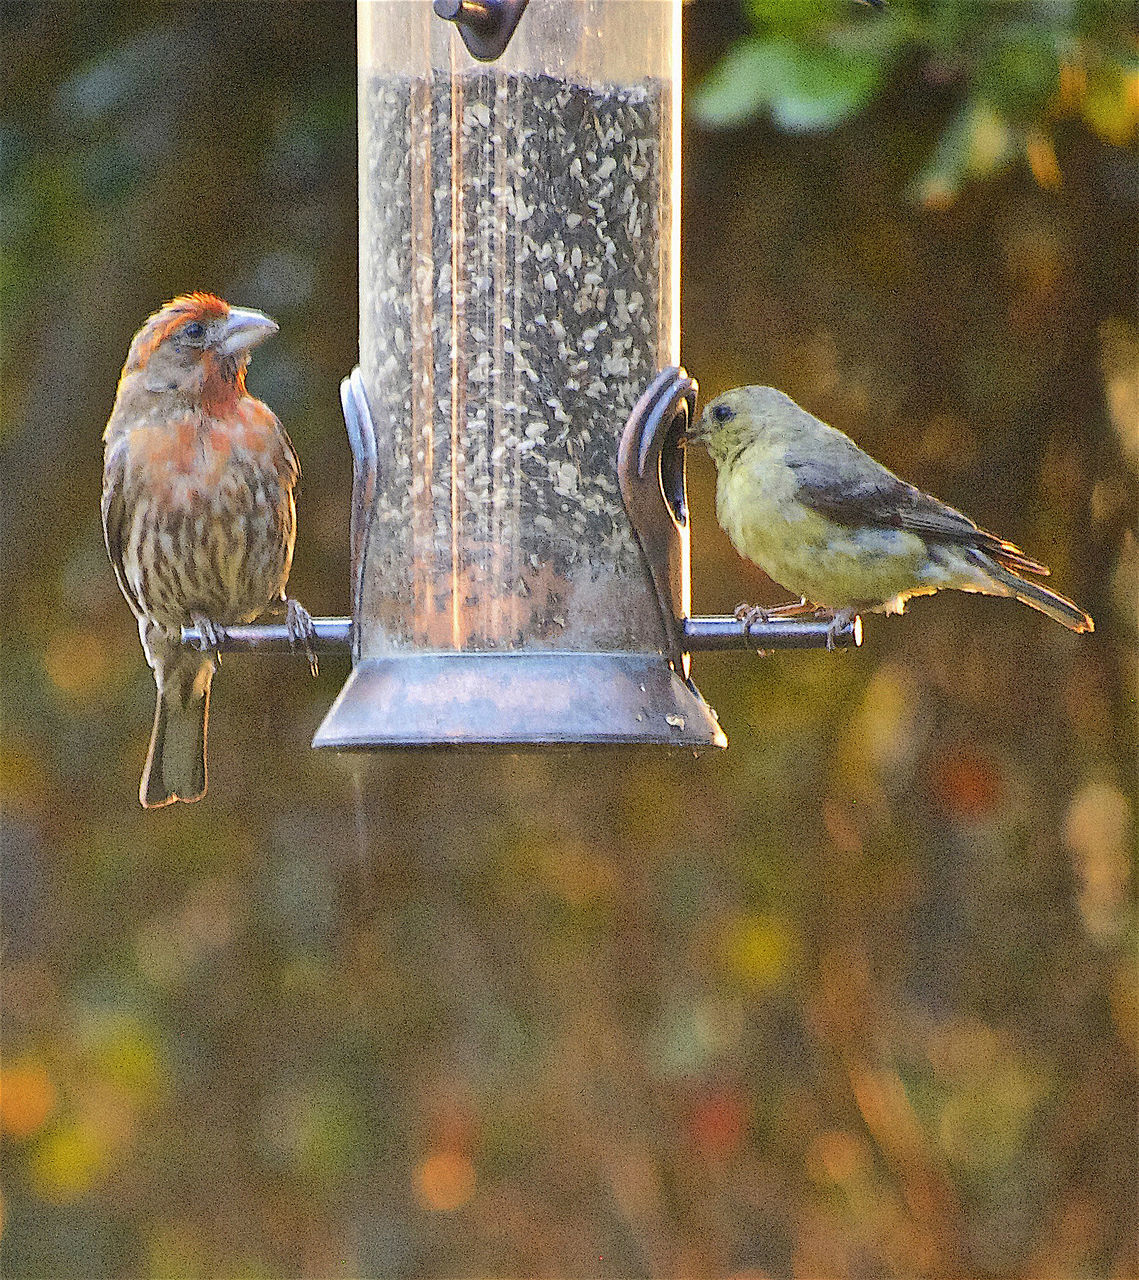 bird, animal themes, animals in the wild, bird feeder, perching, focus on foreground, animal wildlife, no people, day, outdoors, nature, close-up, sparrow, food